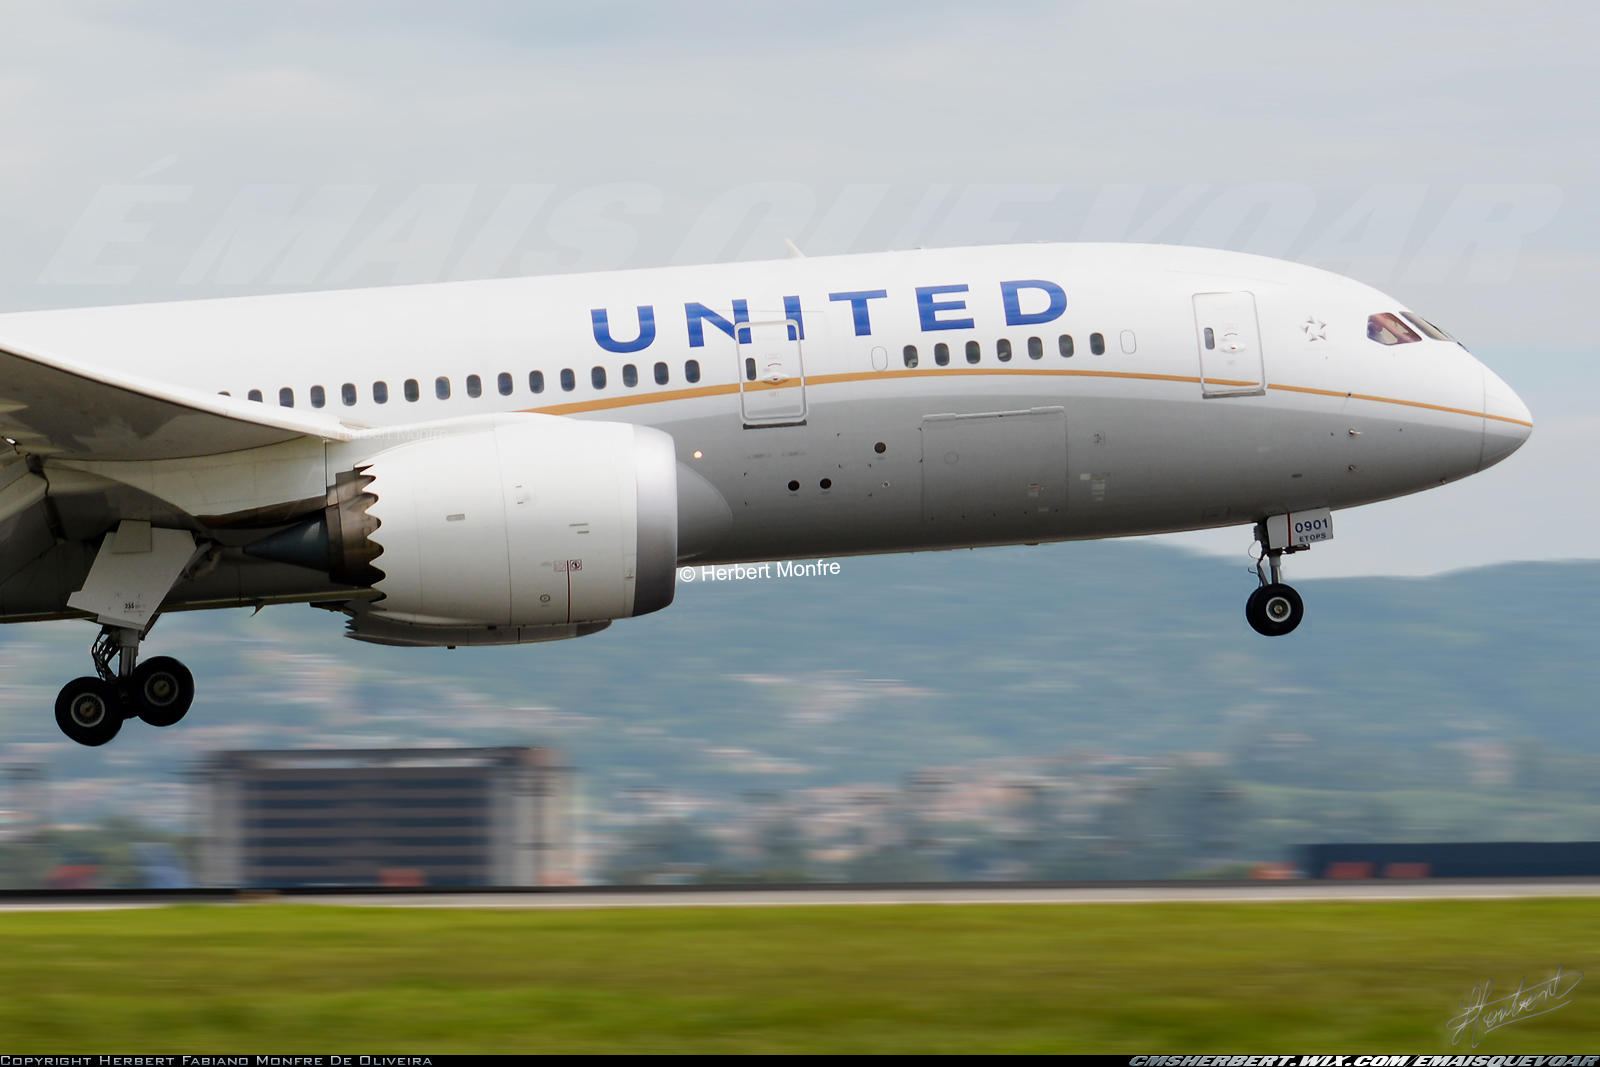 United Add 25 New Boeing 737-700s and Announces the Retirement of Boeing 747